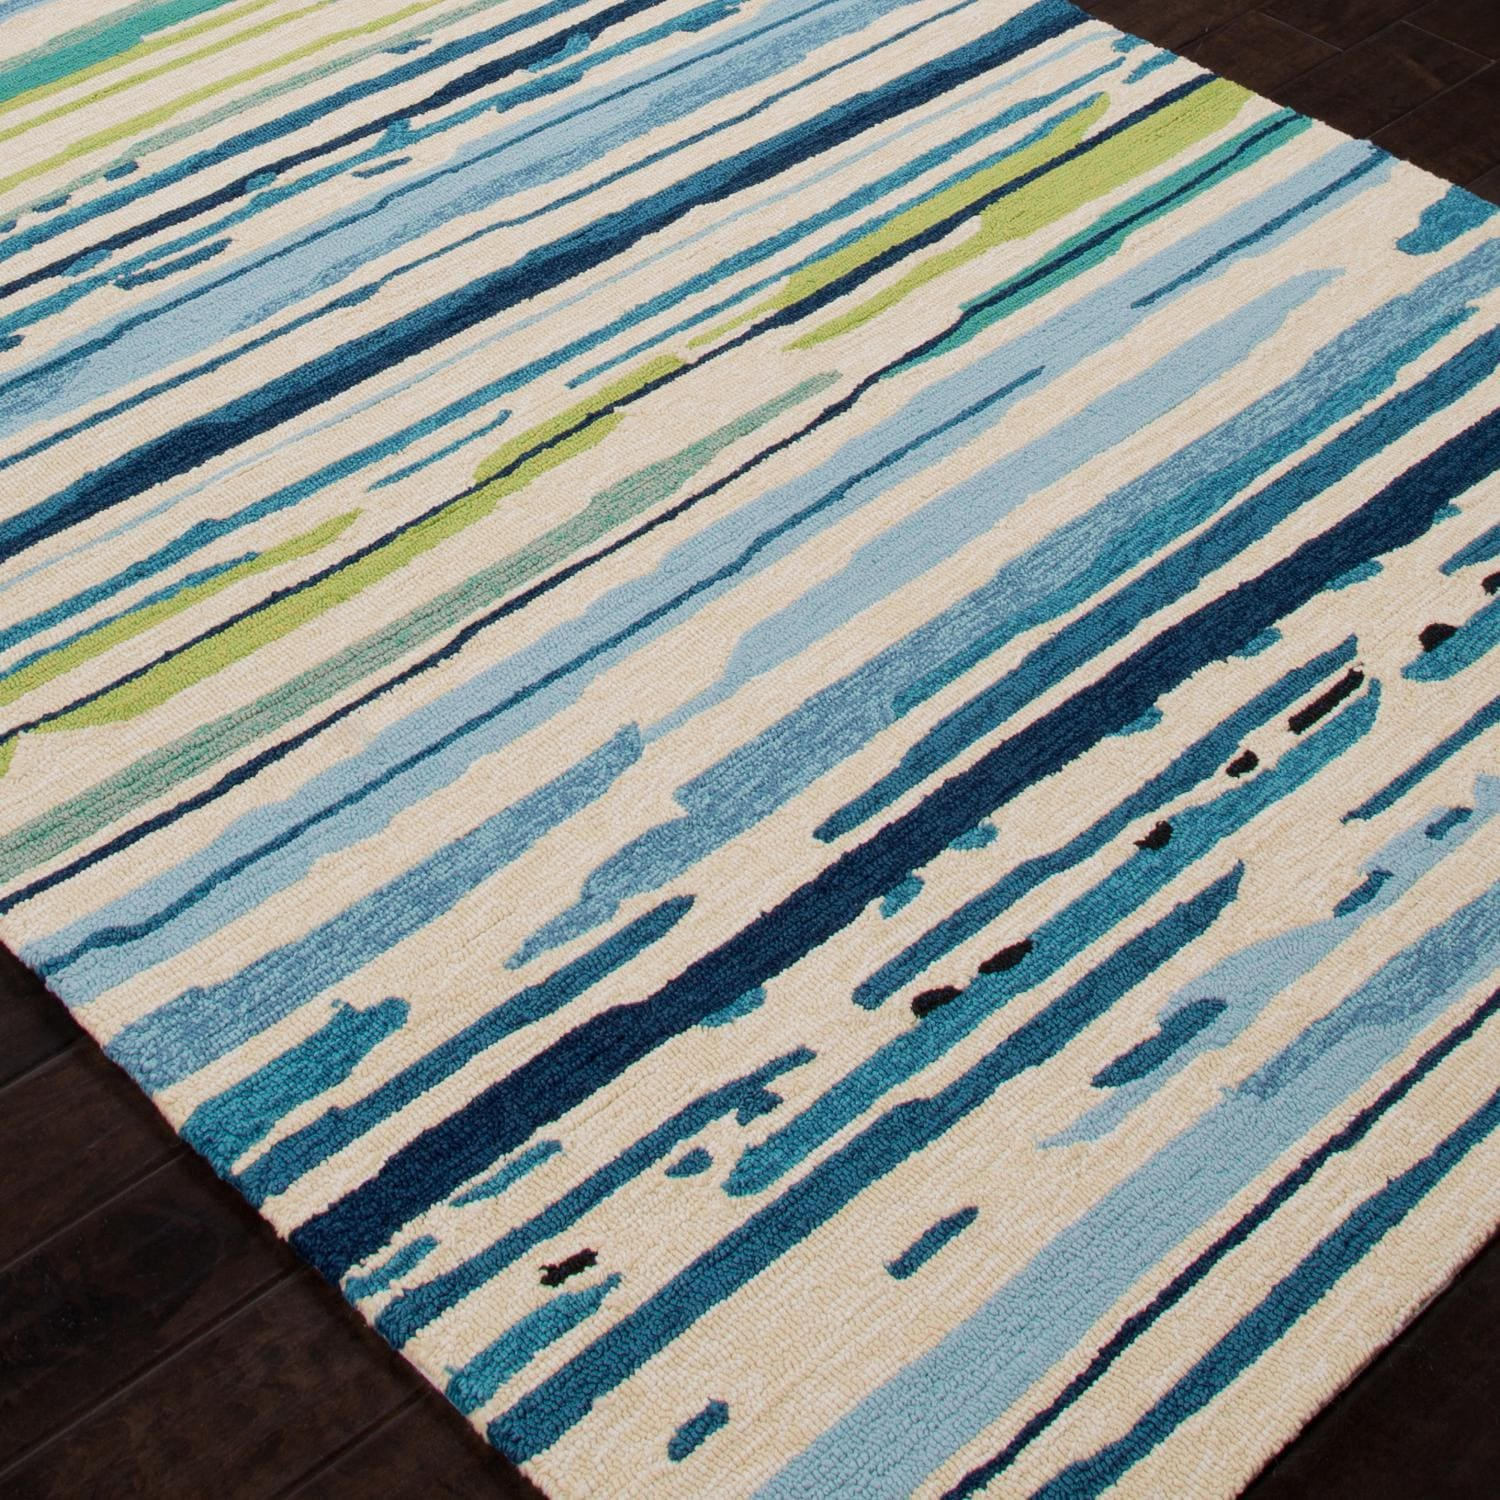 Jaipur Rugs Colours Sketchy Lines 2 X 3 Indoor/Outdoor Rug   Angle View